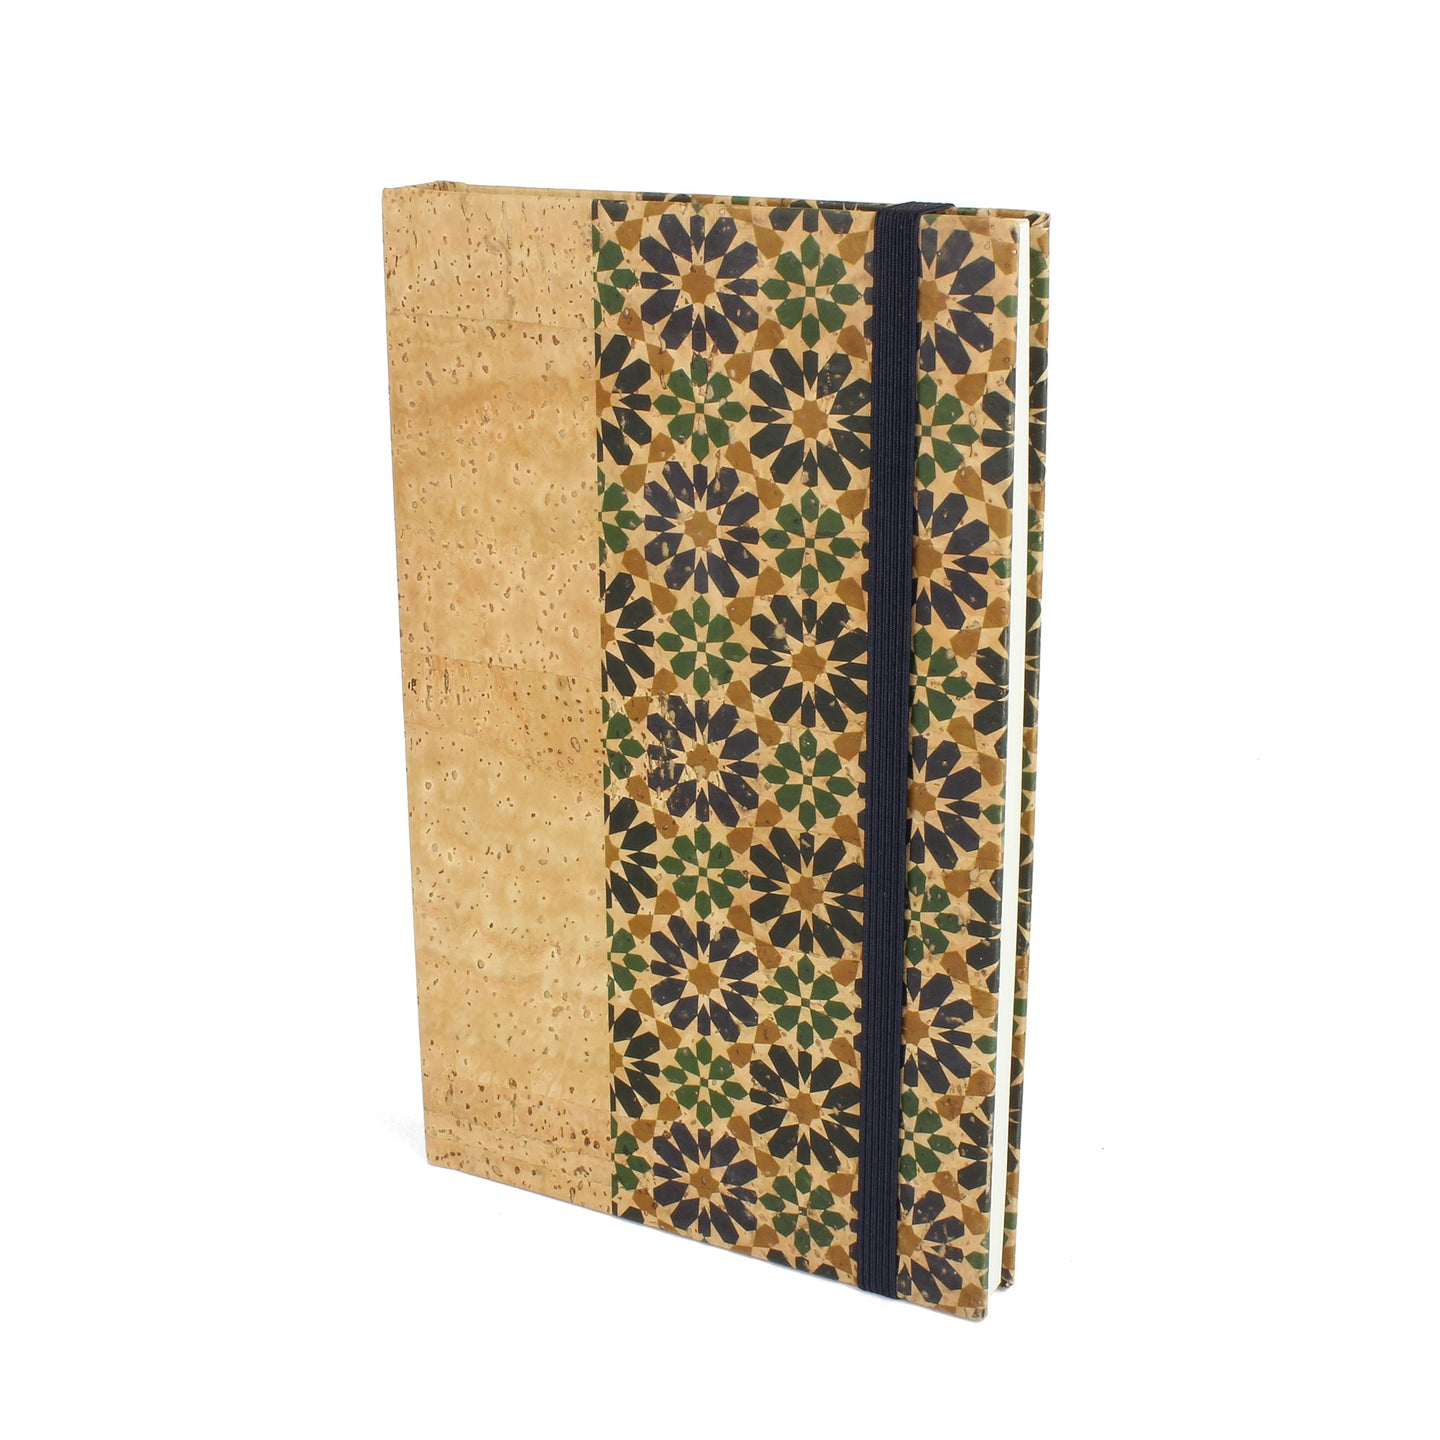 Hispanic-Arab Notebook